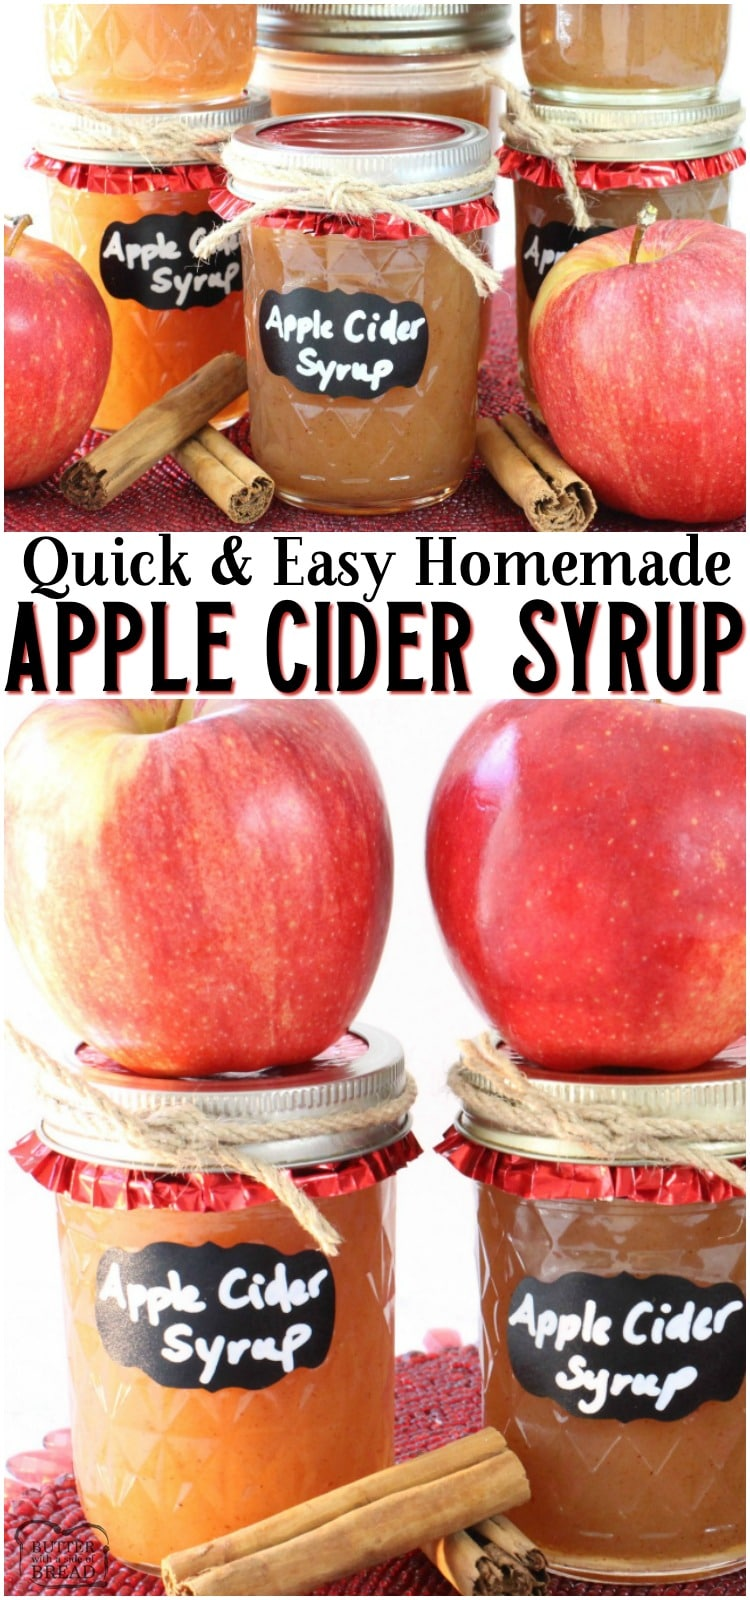 Easy Apple Cider Syrup made with simple ingredients including apple cider & pumpkin pie spice! This delightful homemade syrup recipe is easy to make and tastes wonderful. Perfect flavors for Fall breakfasts!